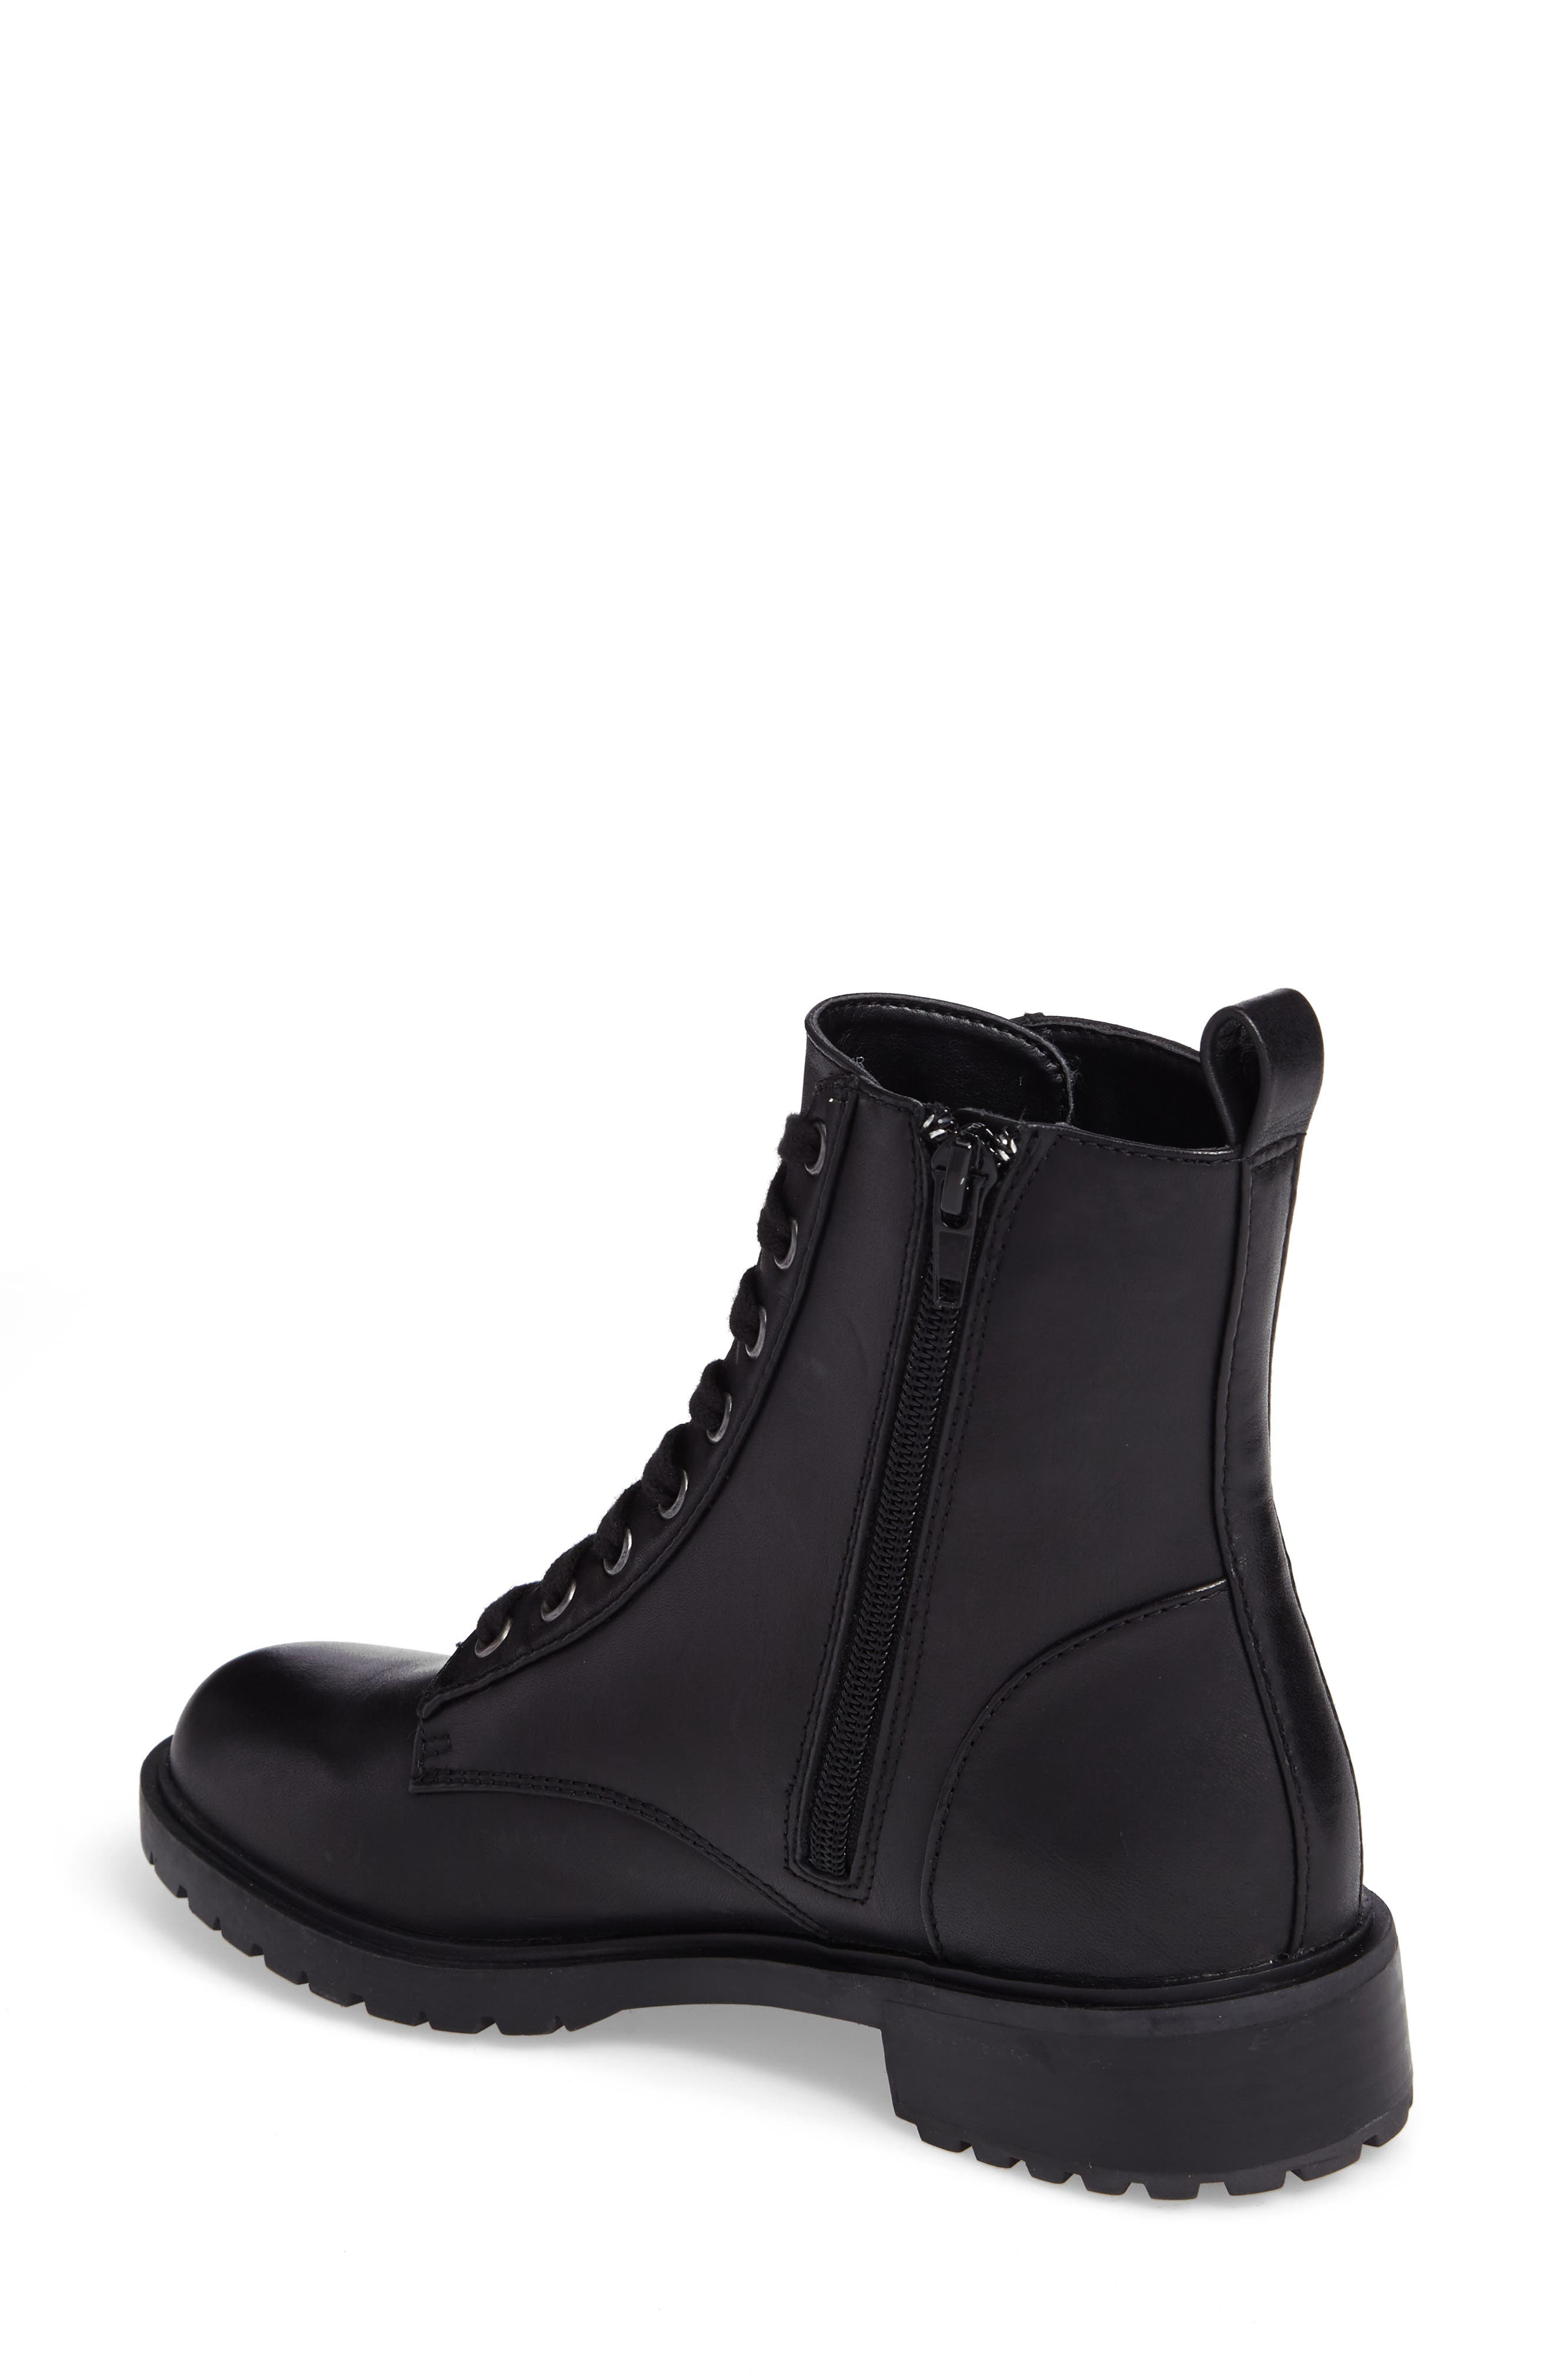 Officer Combat Boot,                             Alternate thumbnail 2, color,                             001